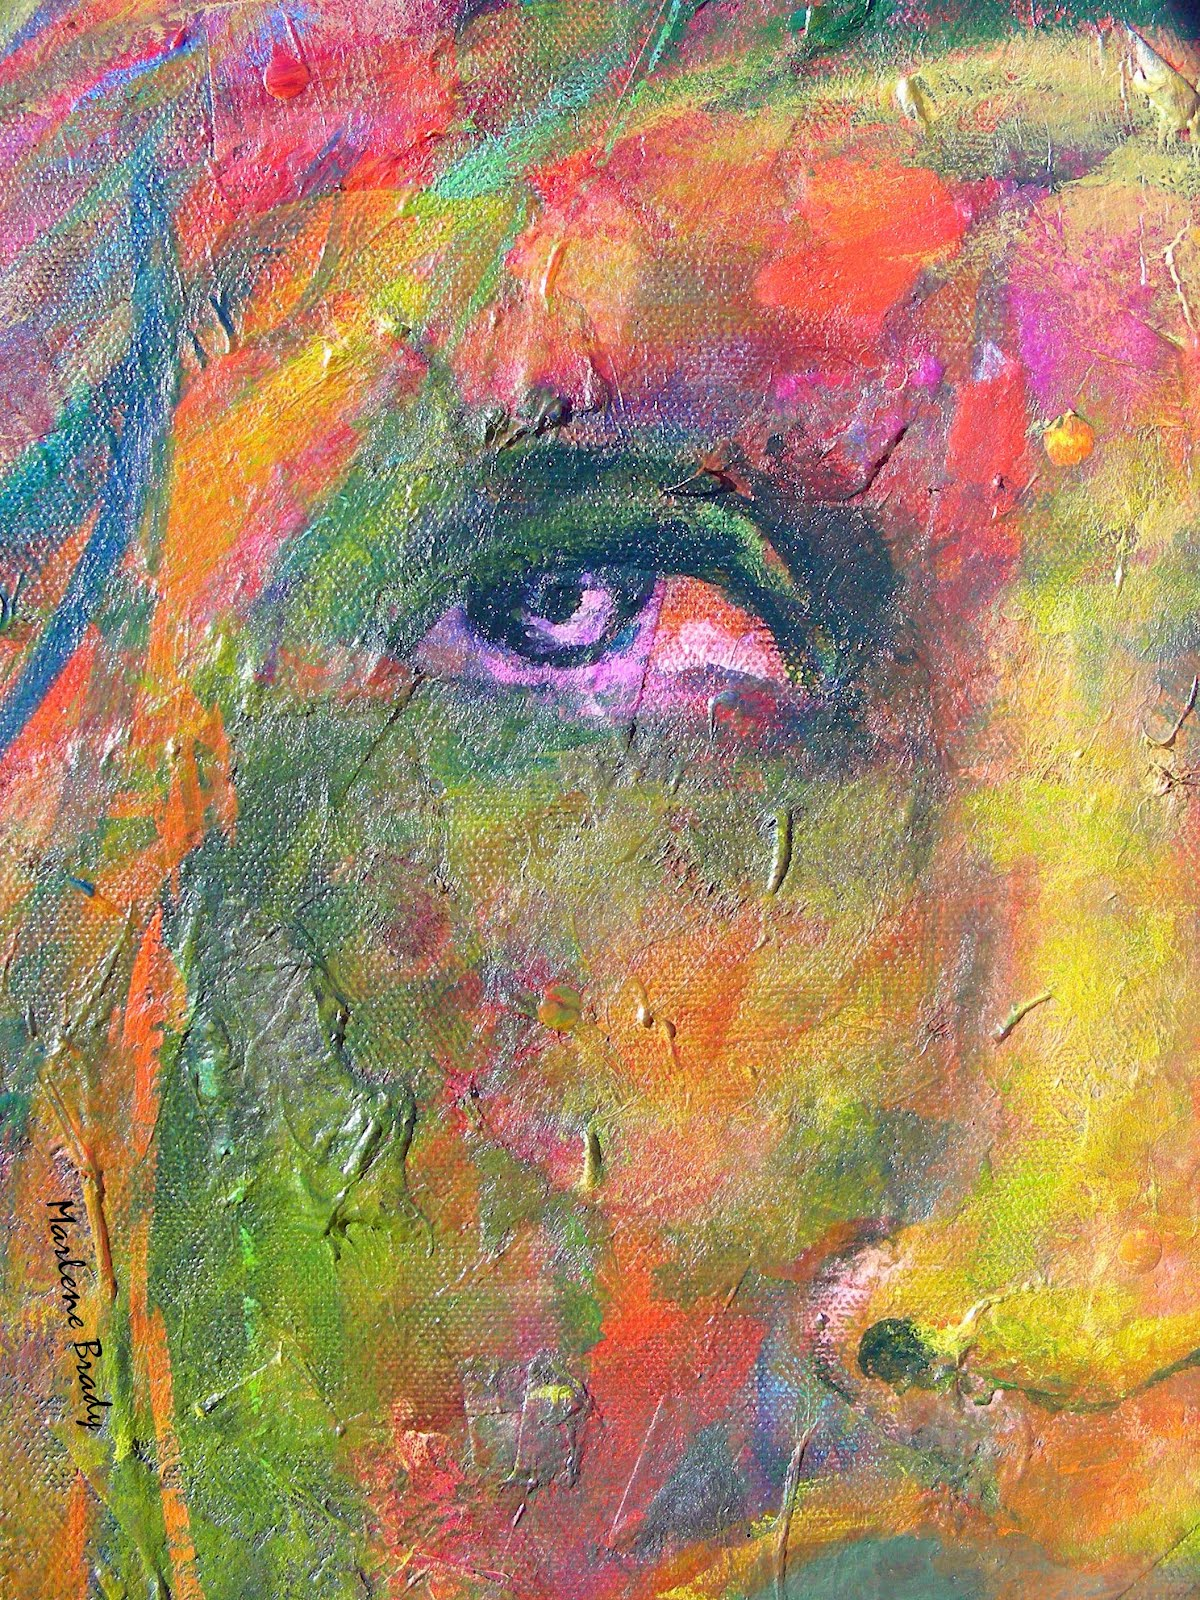 Marlene Brady: Textured Abstract Face Paintings